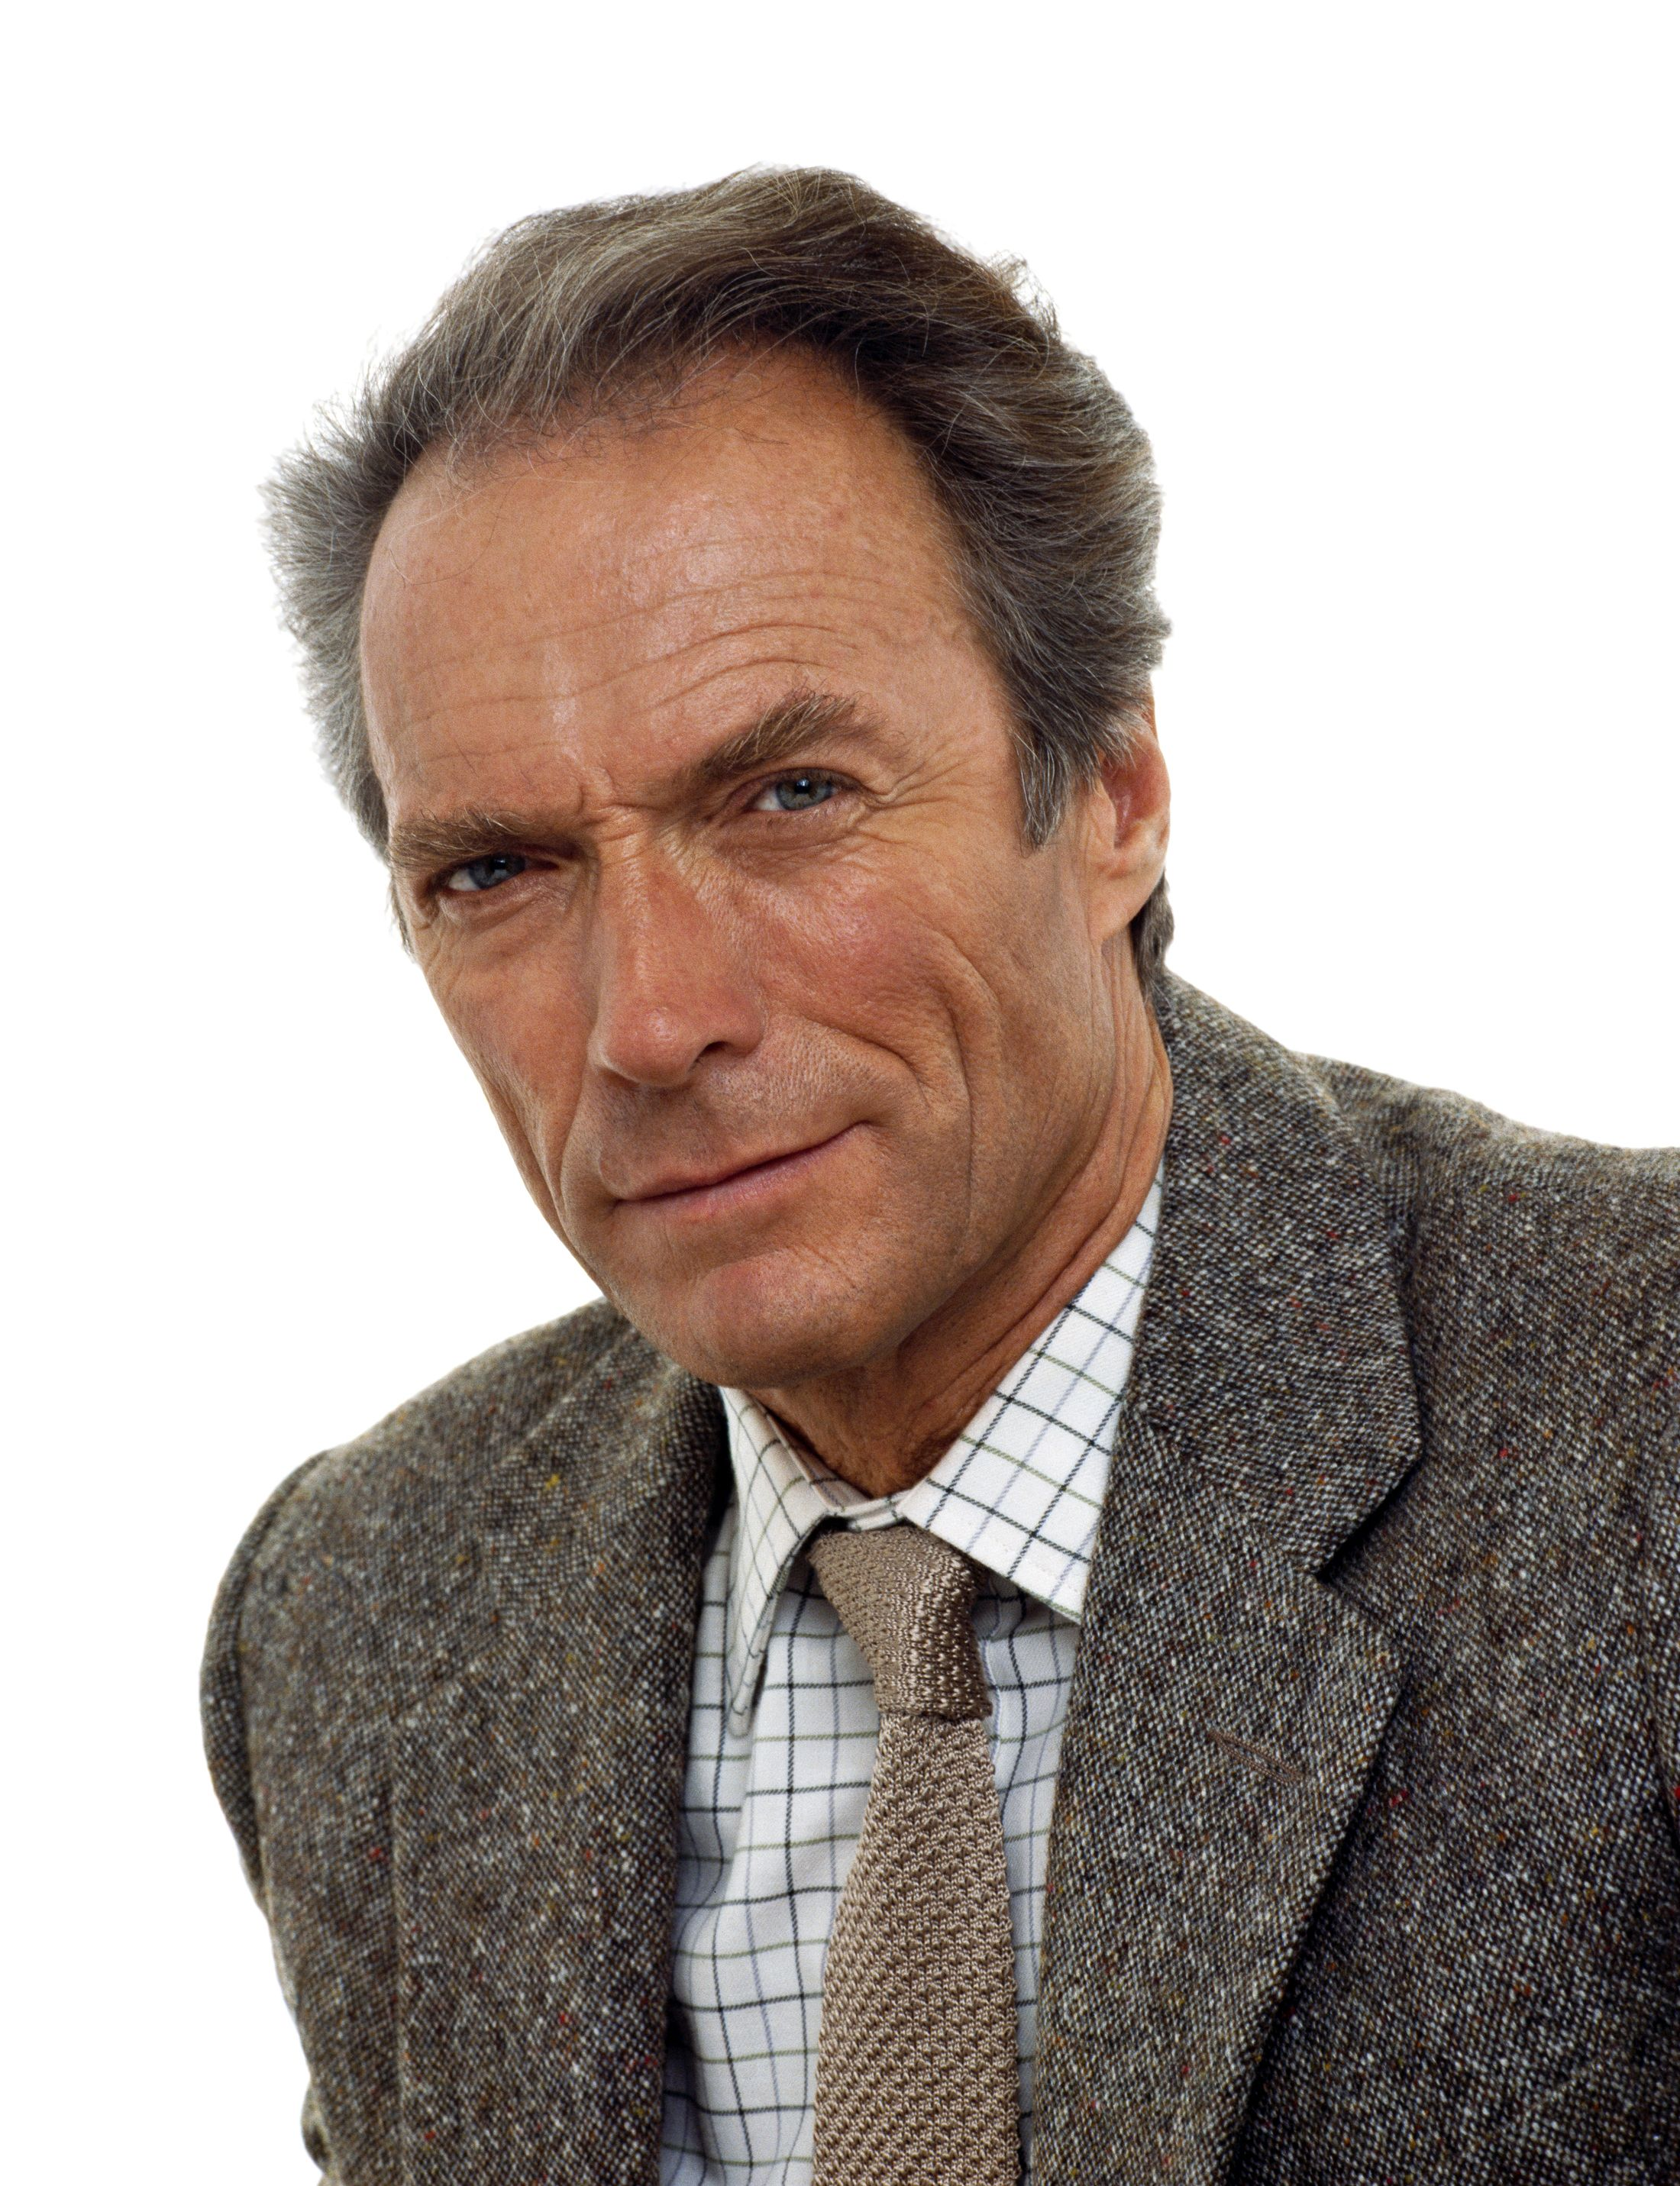 Clint Eastwood   Clint Eastwood in 2019   Actor clint ...